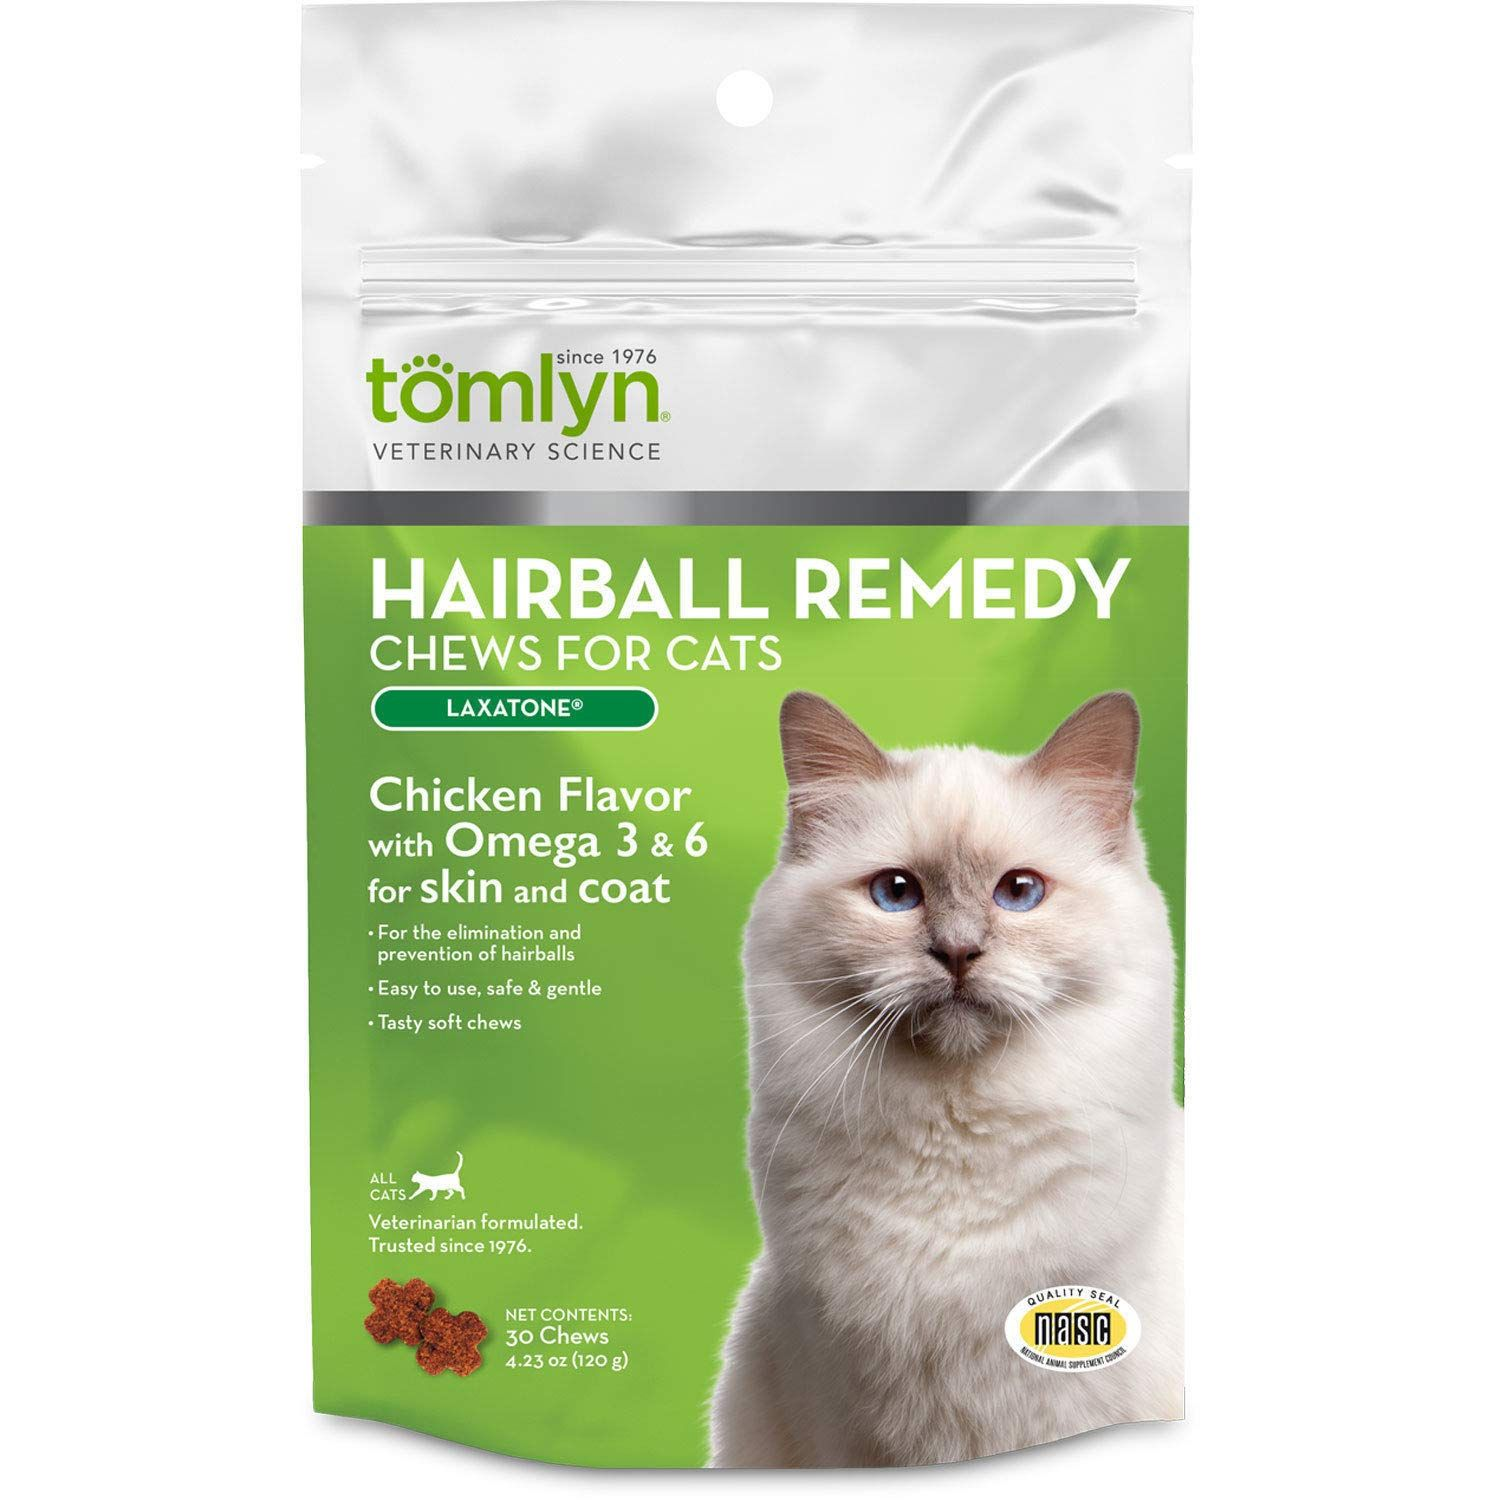 Tomlyn Laxatone Hairball Remedy For Cats Soft Chews Chicken Flavor 60ct Nice Of Your Presence To Drop By To See Ou Chicken Flavors Organic Cat Food Hairball